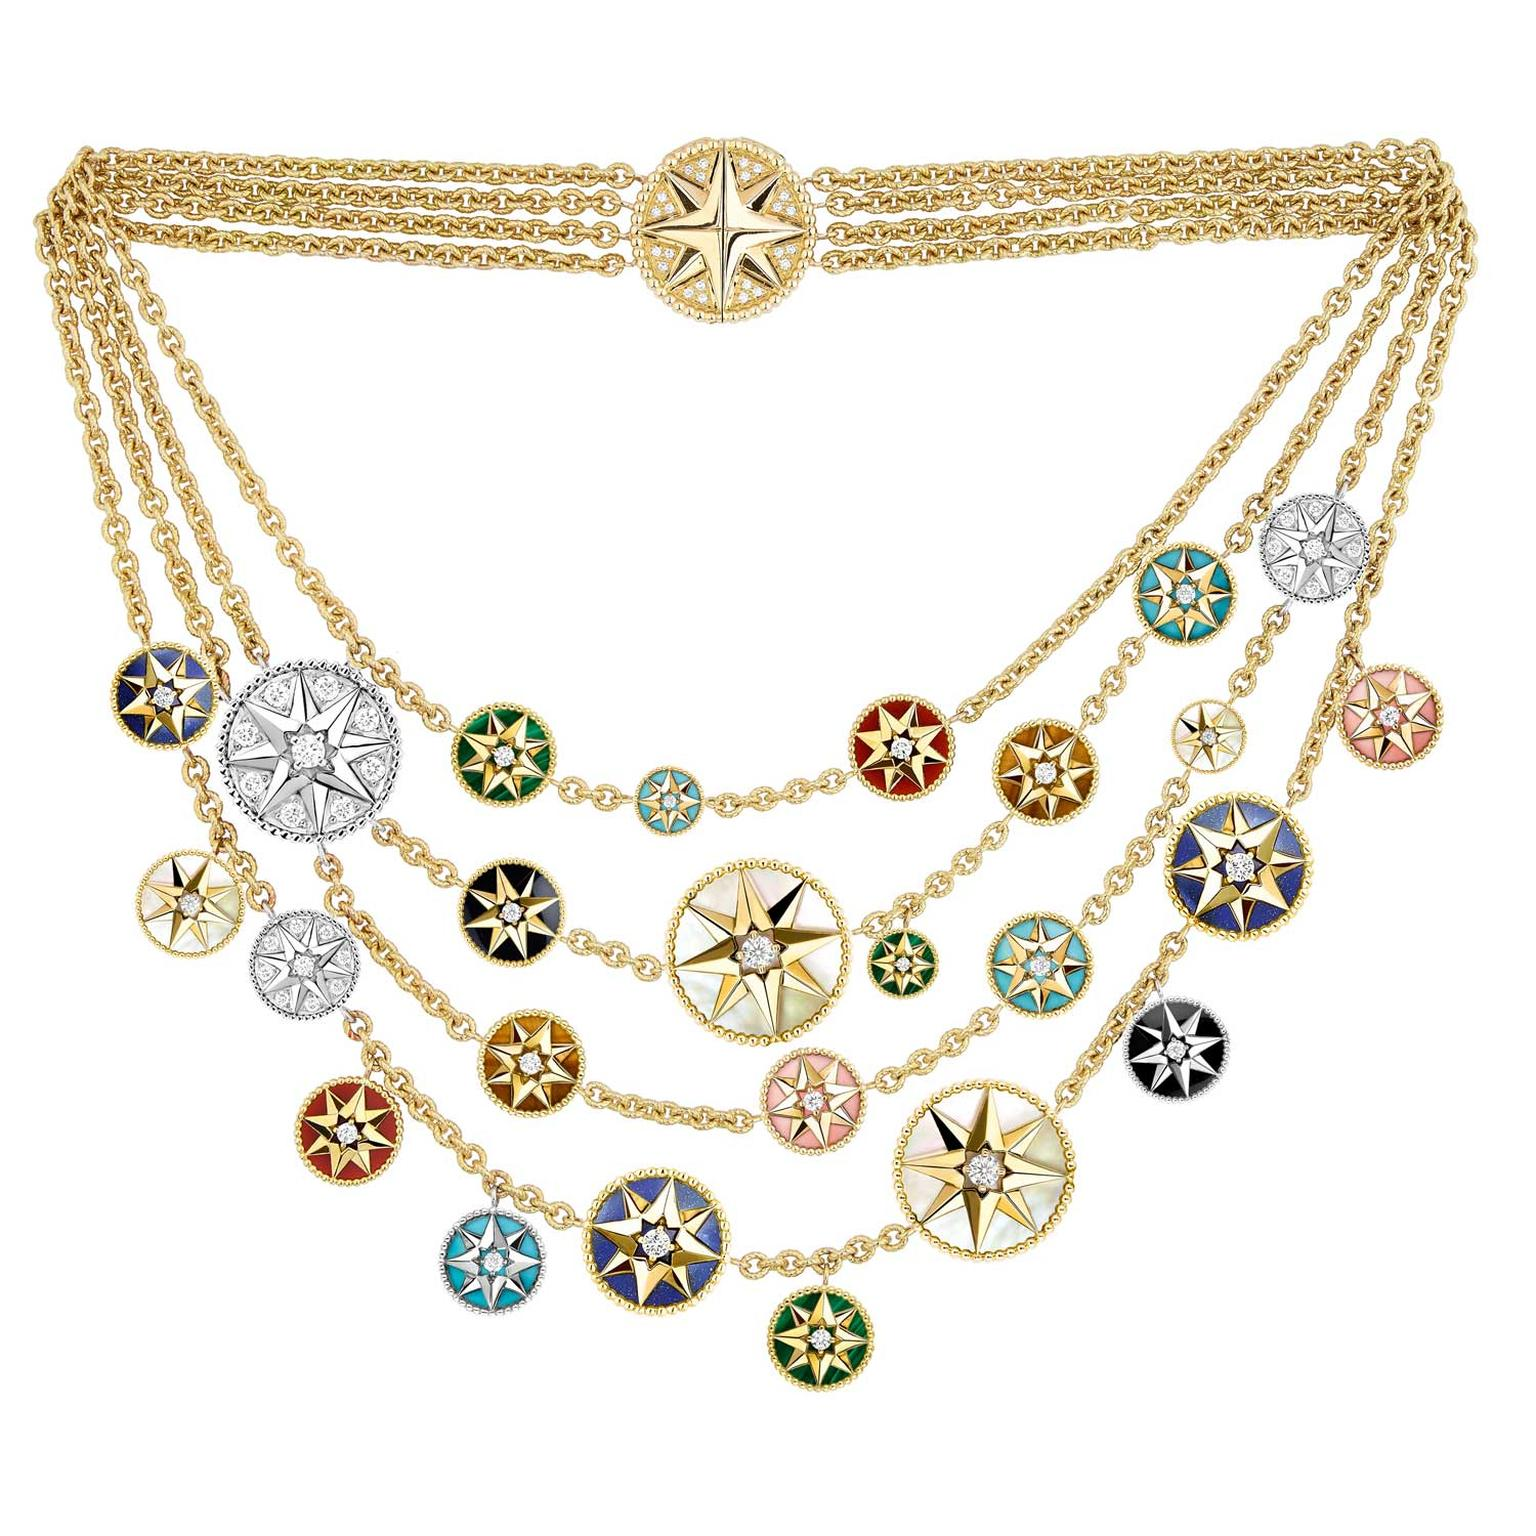 Dior Rose des Vents multi-strand-necklace